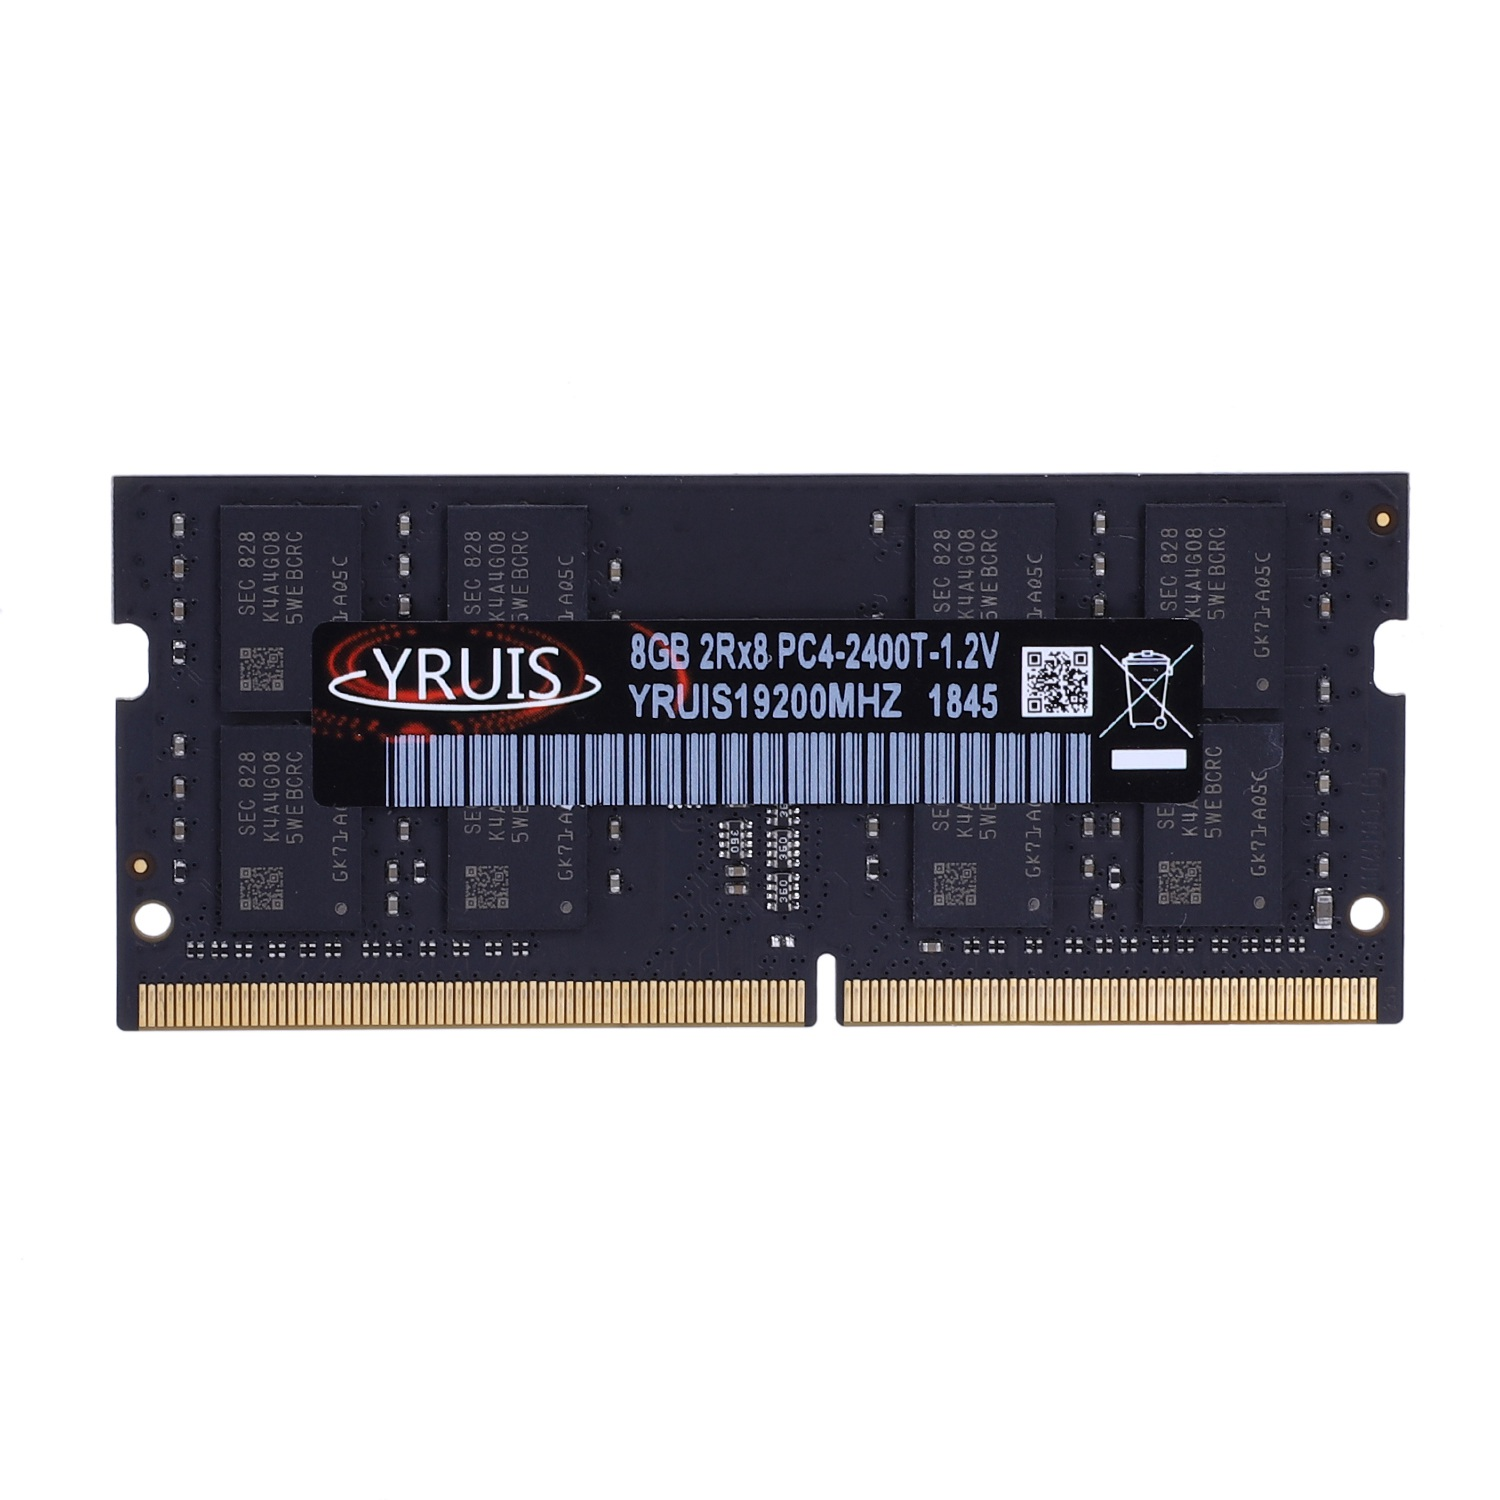 HOT-Yruis <font><b>Ddr4</b></font> 4G <font><b>8Gb</b></font> 2400Mhz Ram Sodimm Laptop Memory Support <font><b>Memoria</b></font> <font><b>Ddr4</b></font> <font><b>Notebook</b></font>(1.2V) image